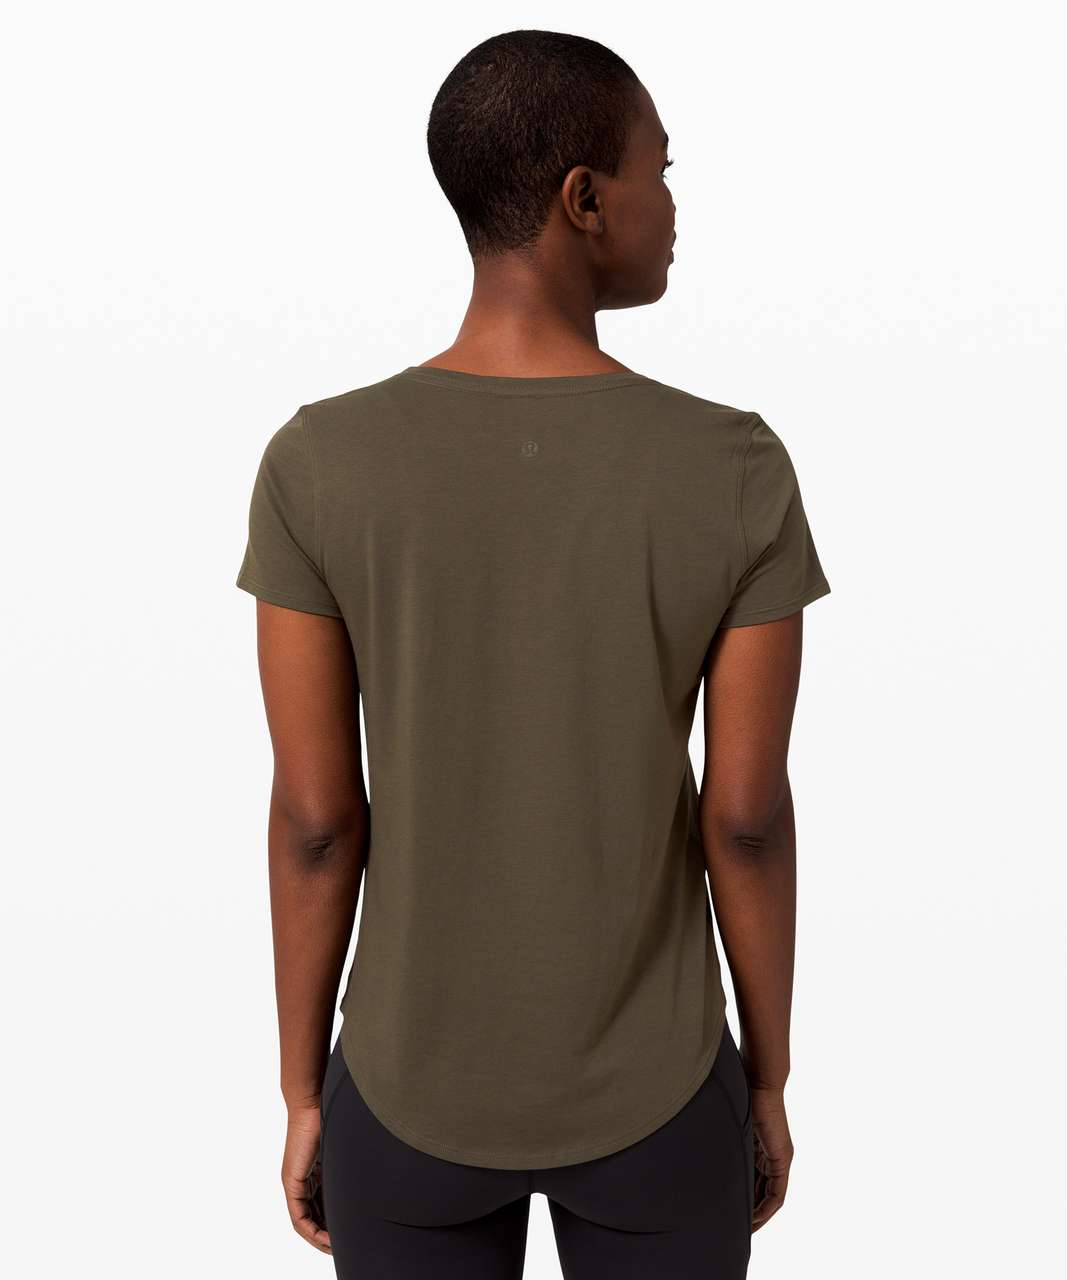 Lululemon Love Tee V - Dark Olive